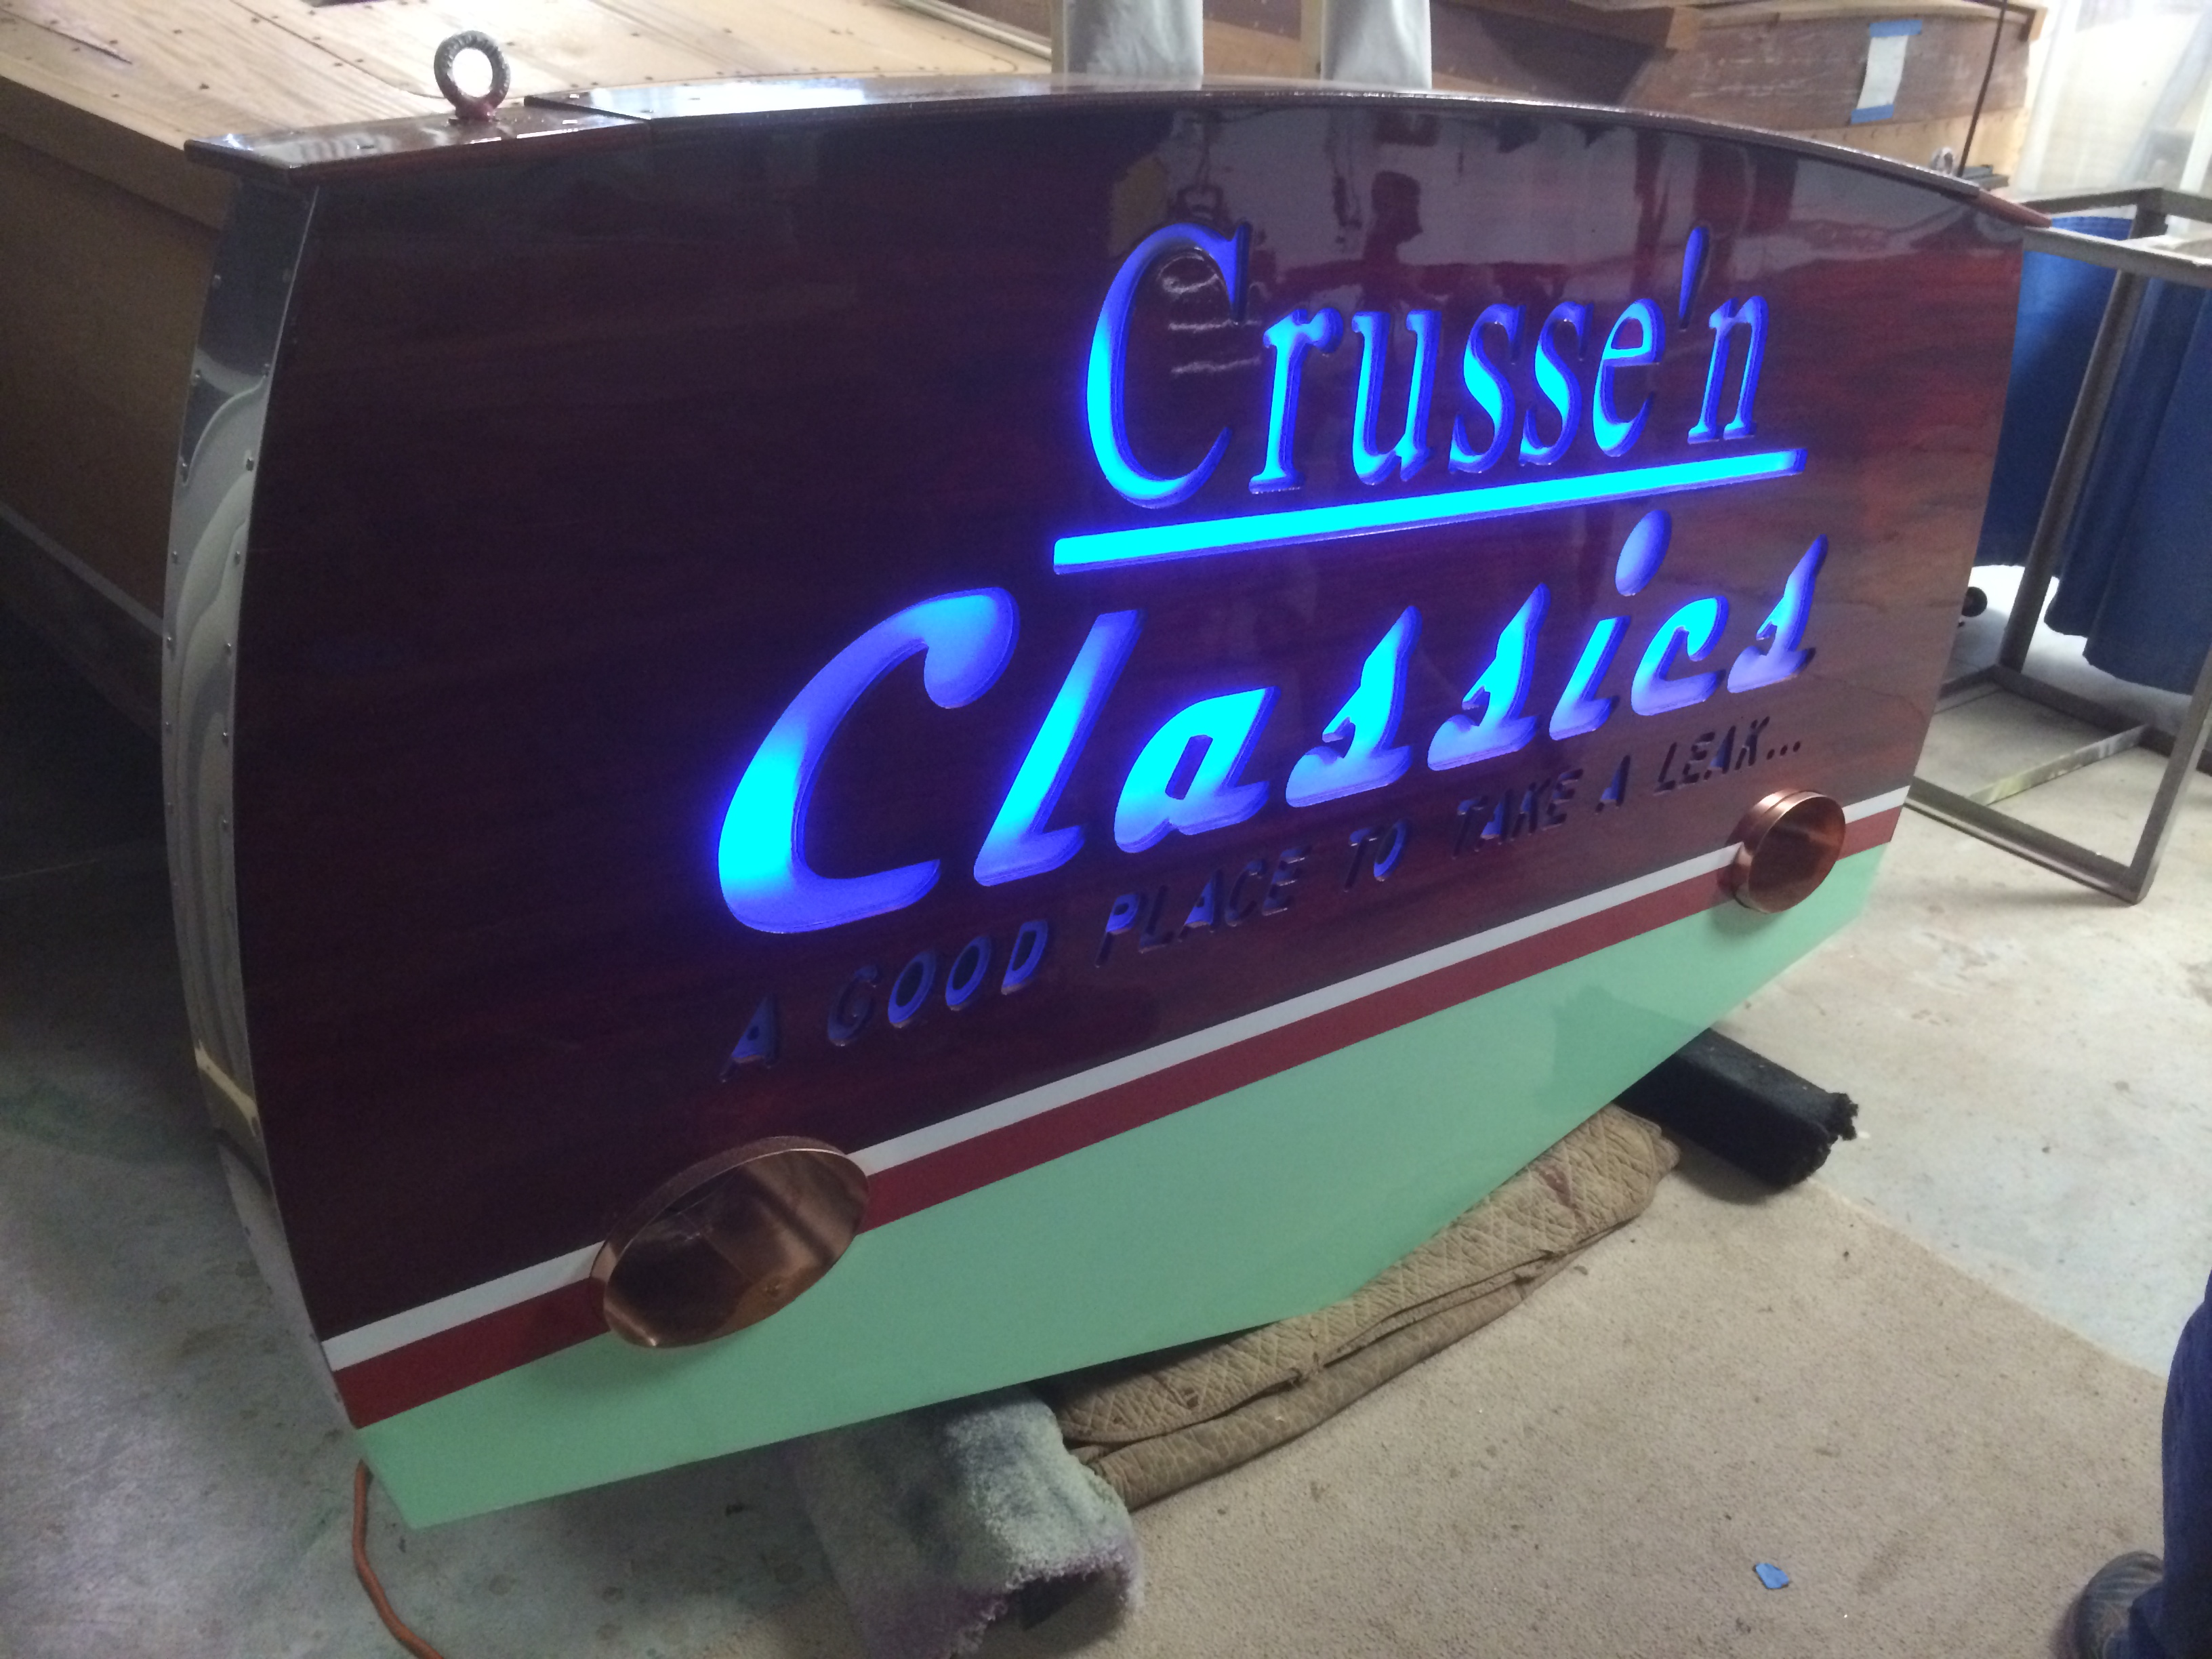 Crusse'n Classics wooden boat repair